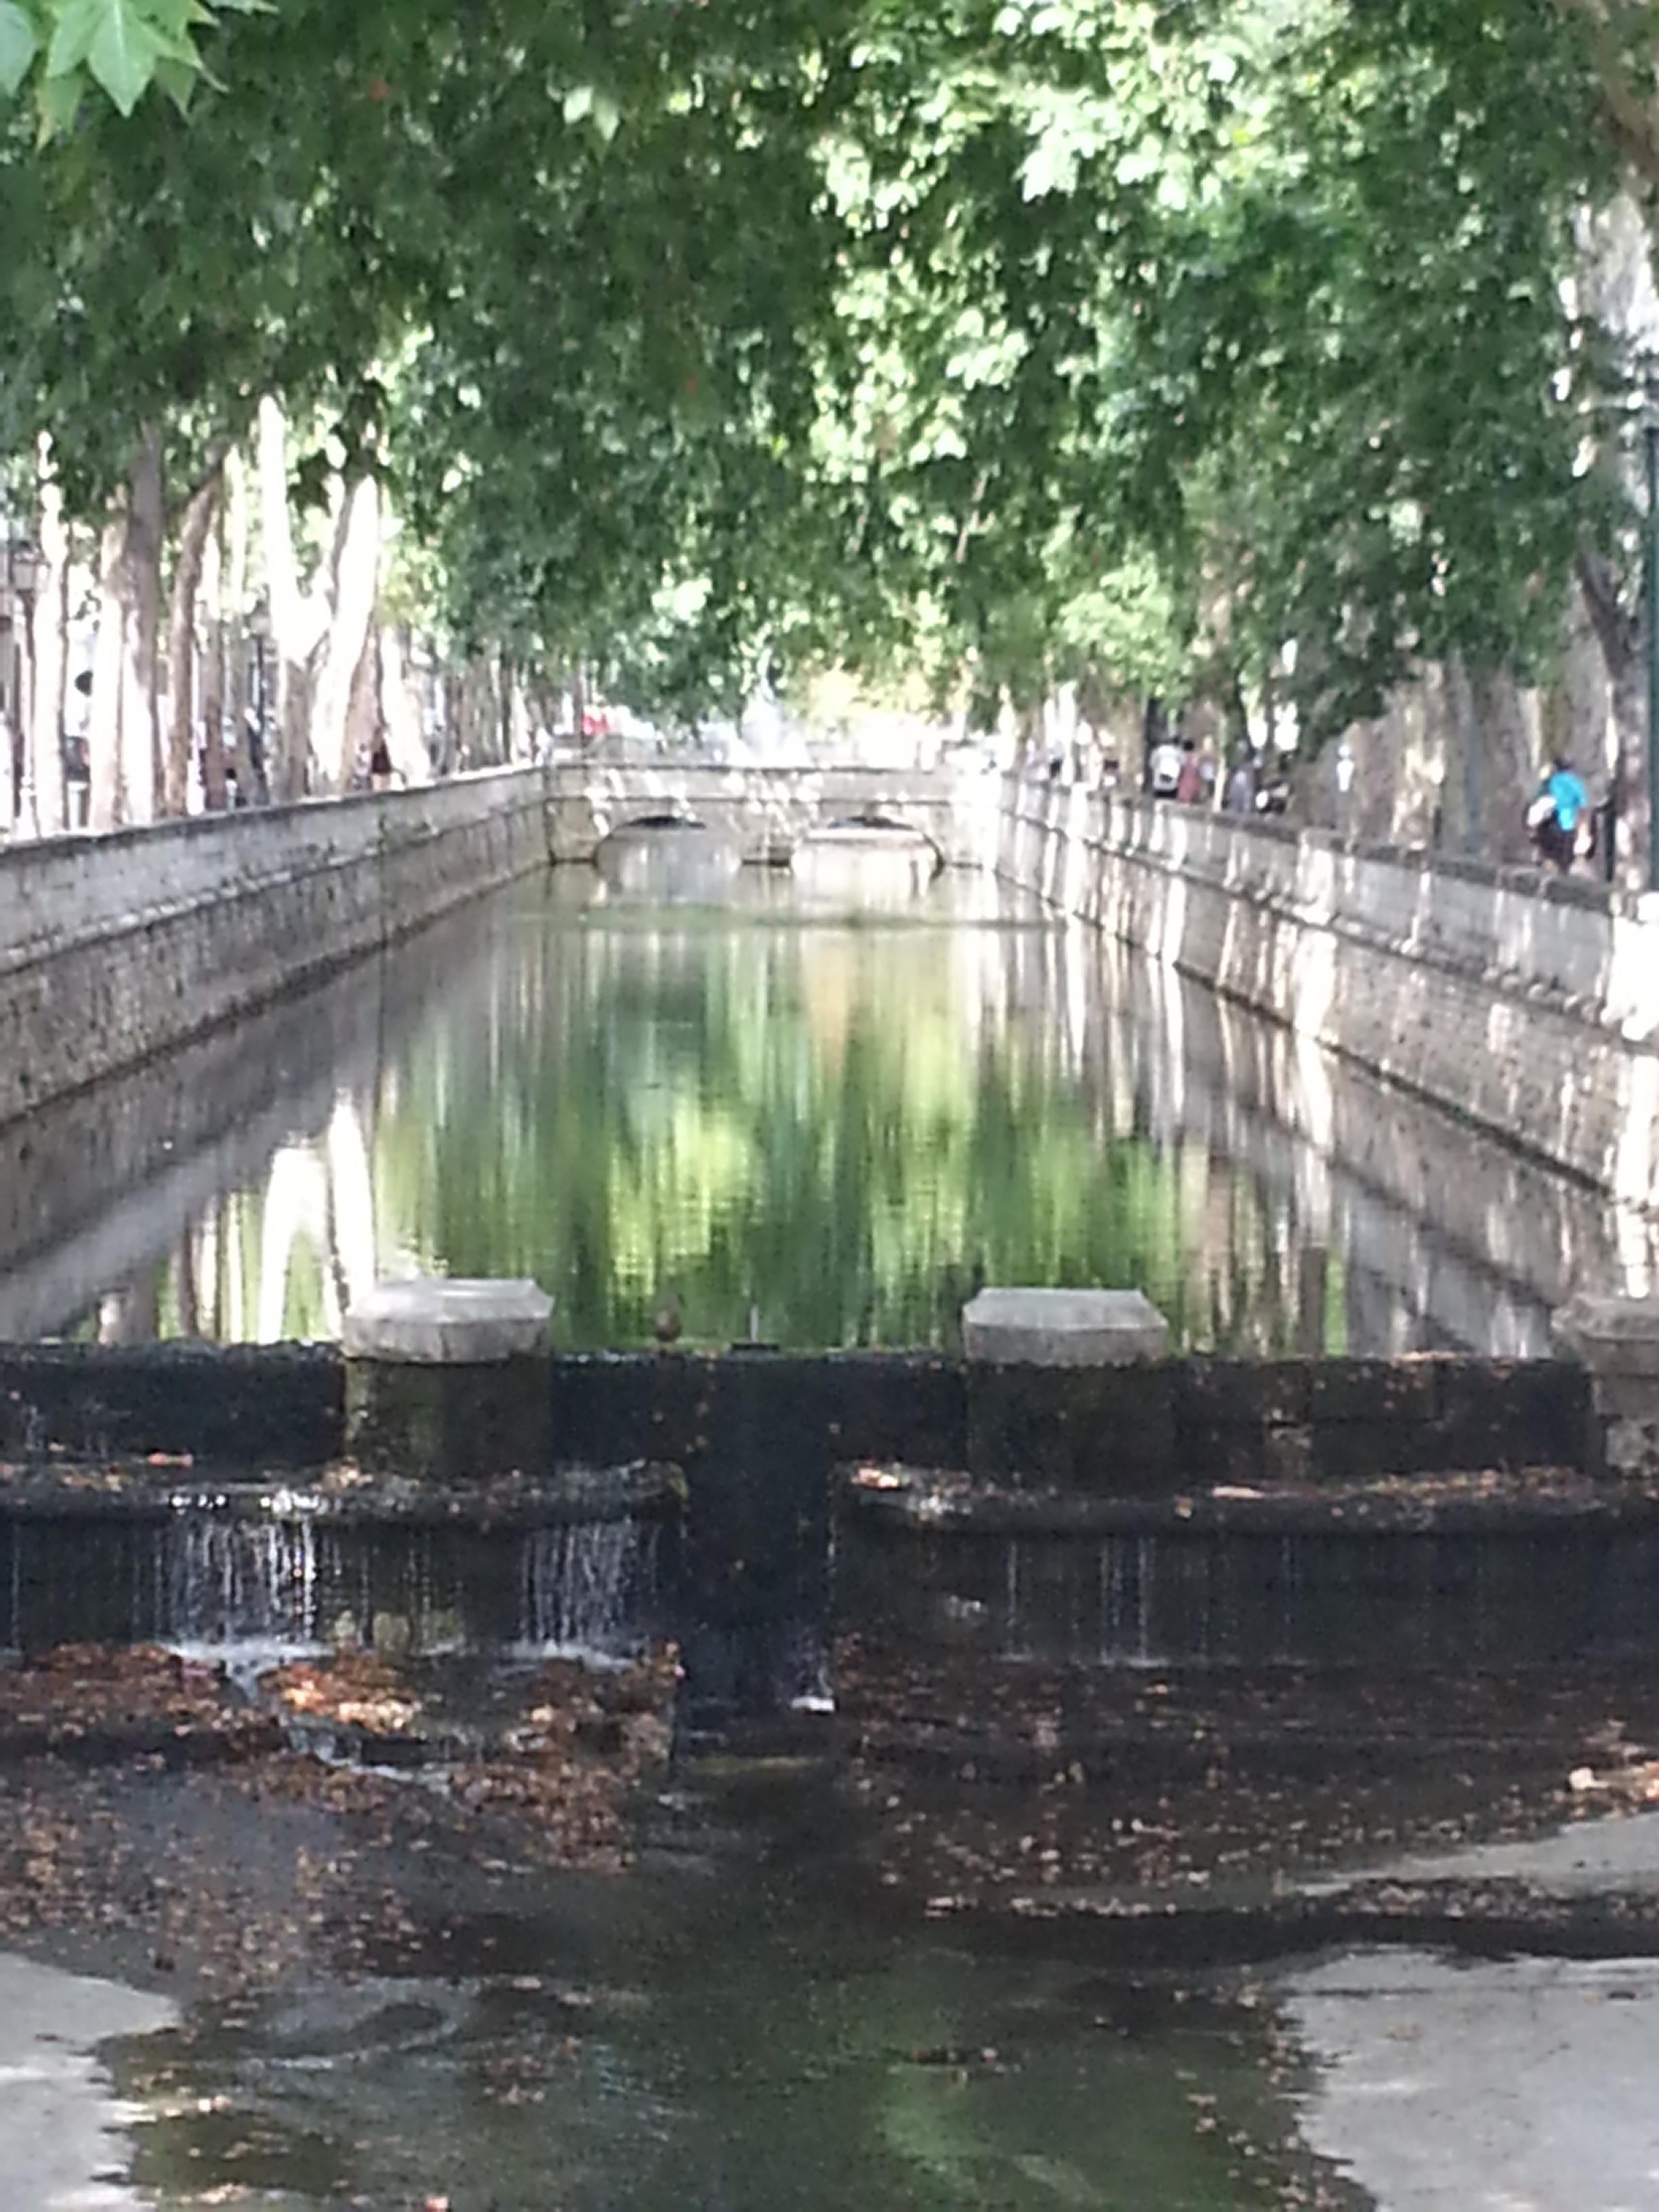 Nimes and its river